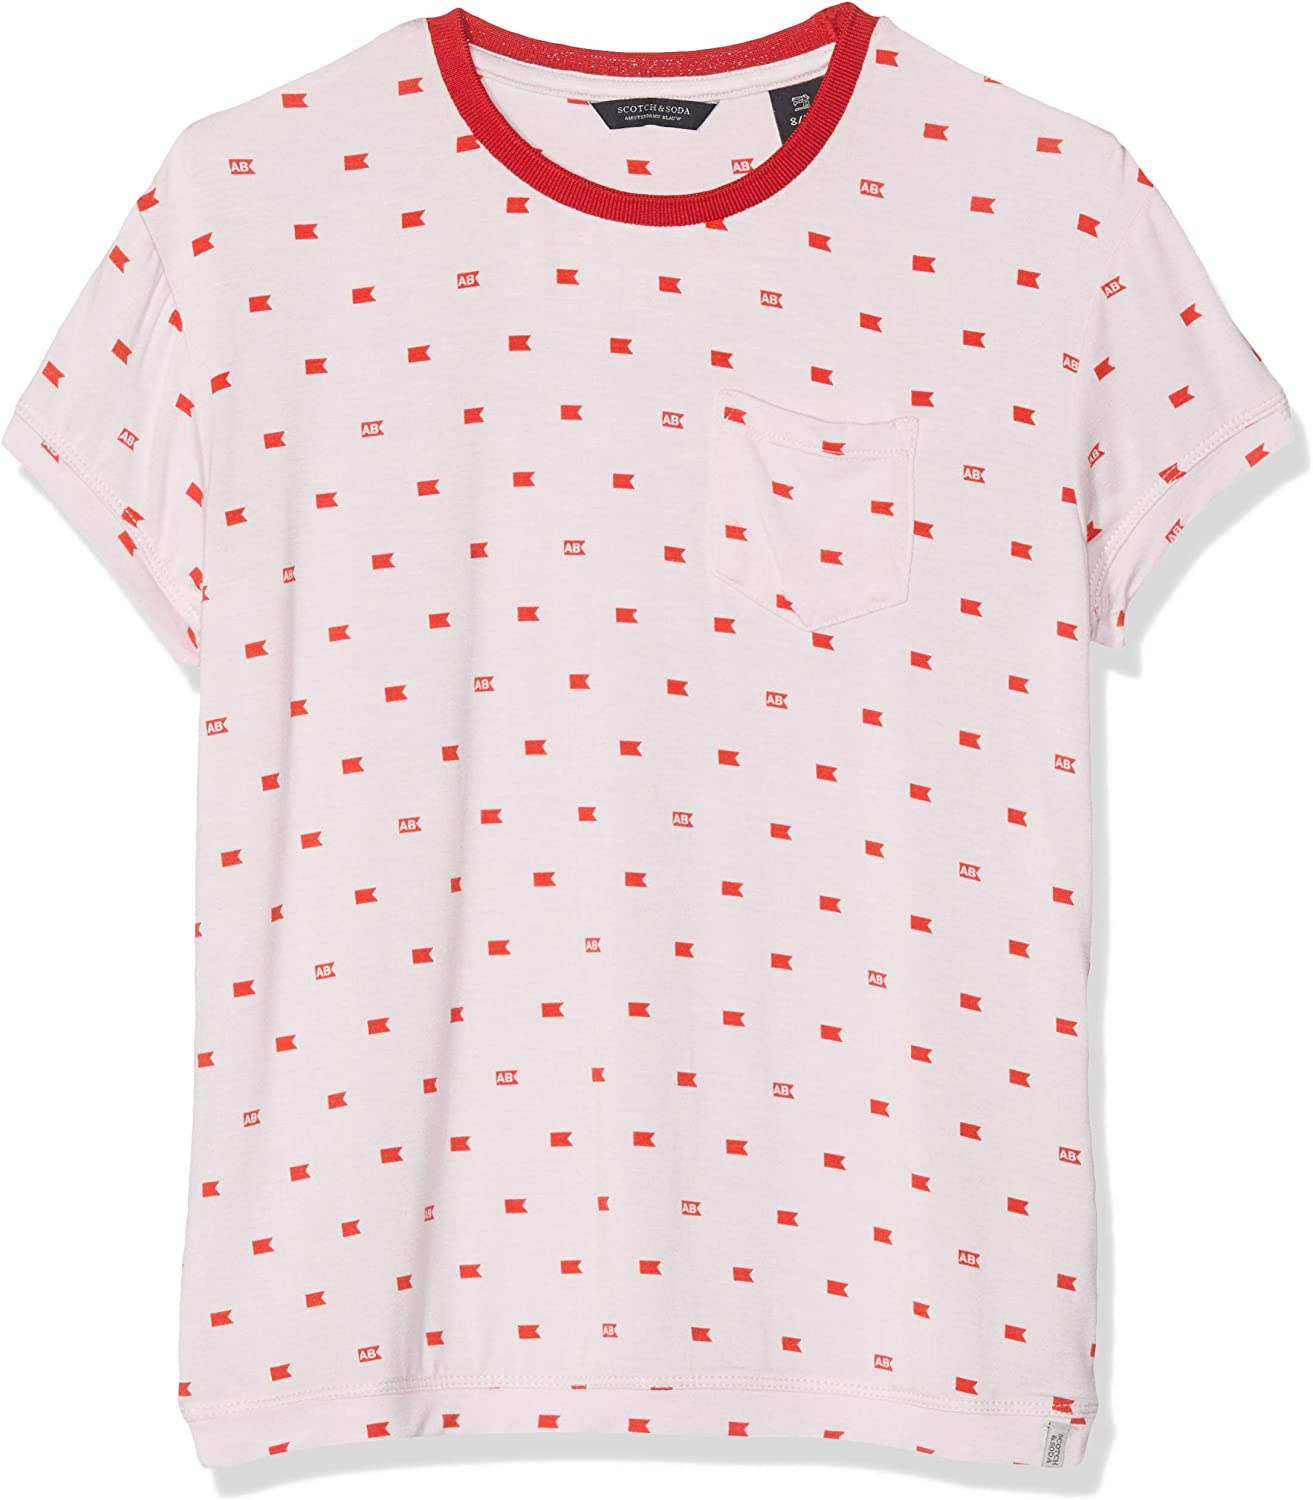 Scotch /& Soda Girls Allover Printed S//S Tee T-Shirt